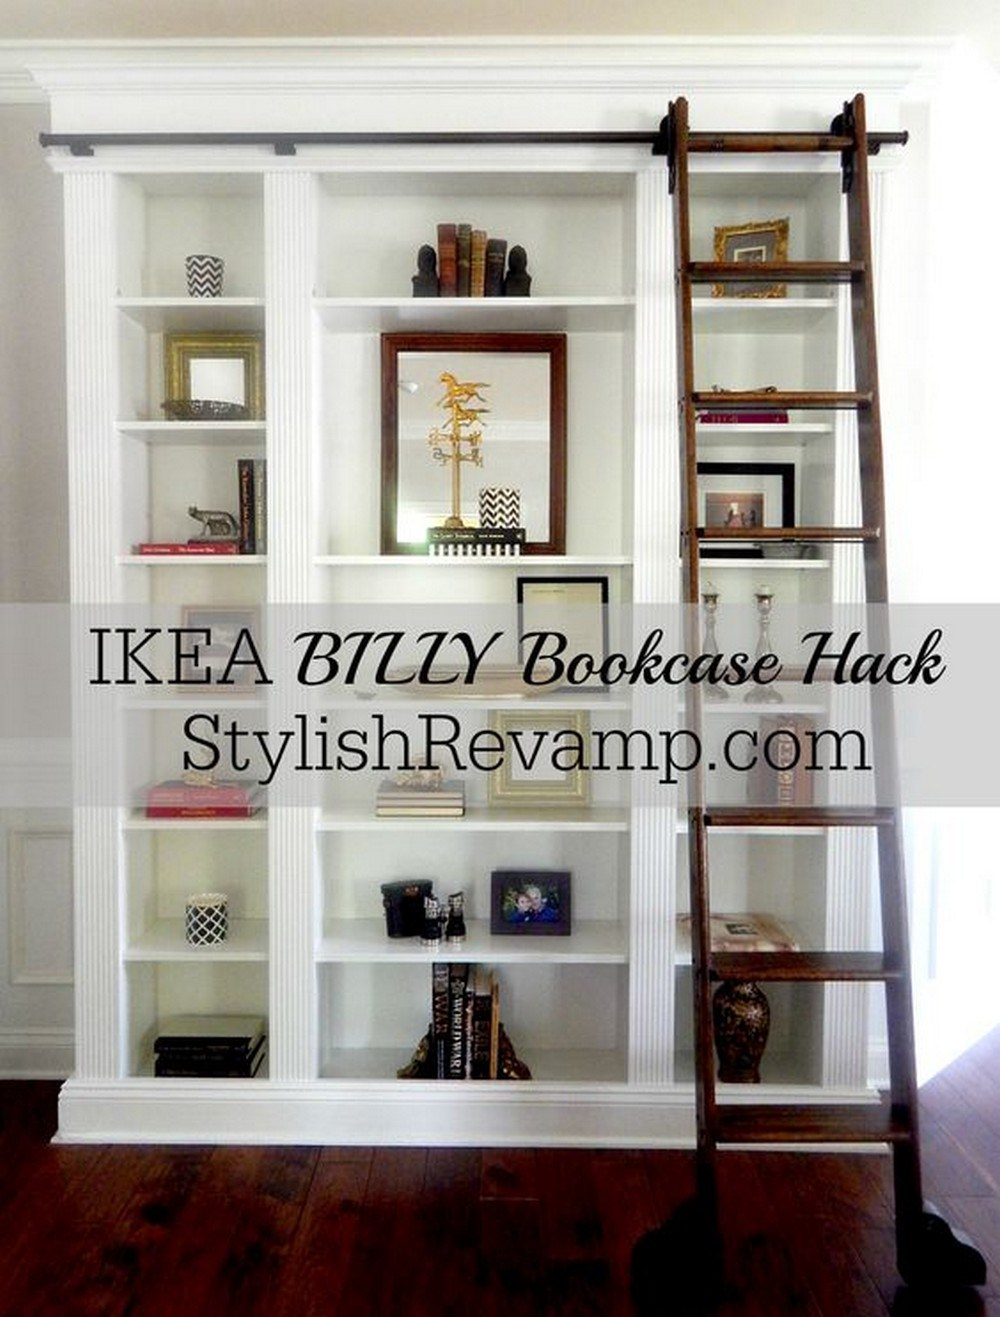 Incredible ikea hacks for home decoration ideas decor units - Incredible ideas for home ...